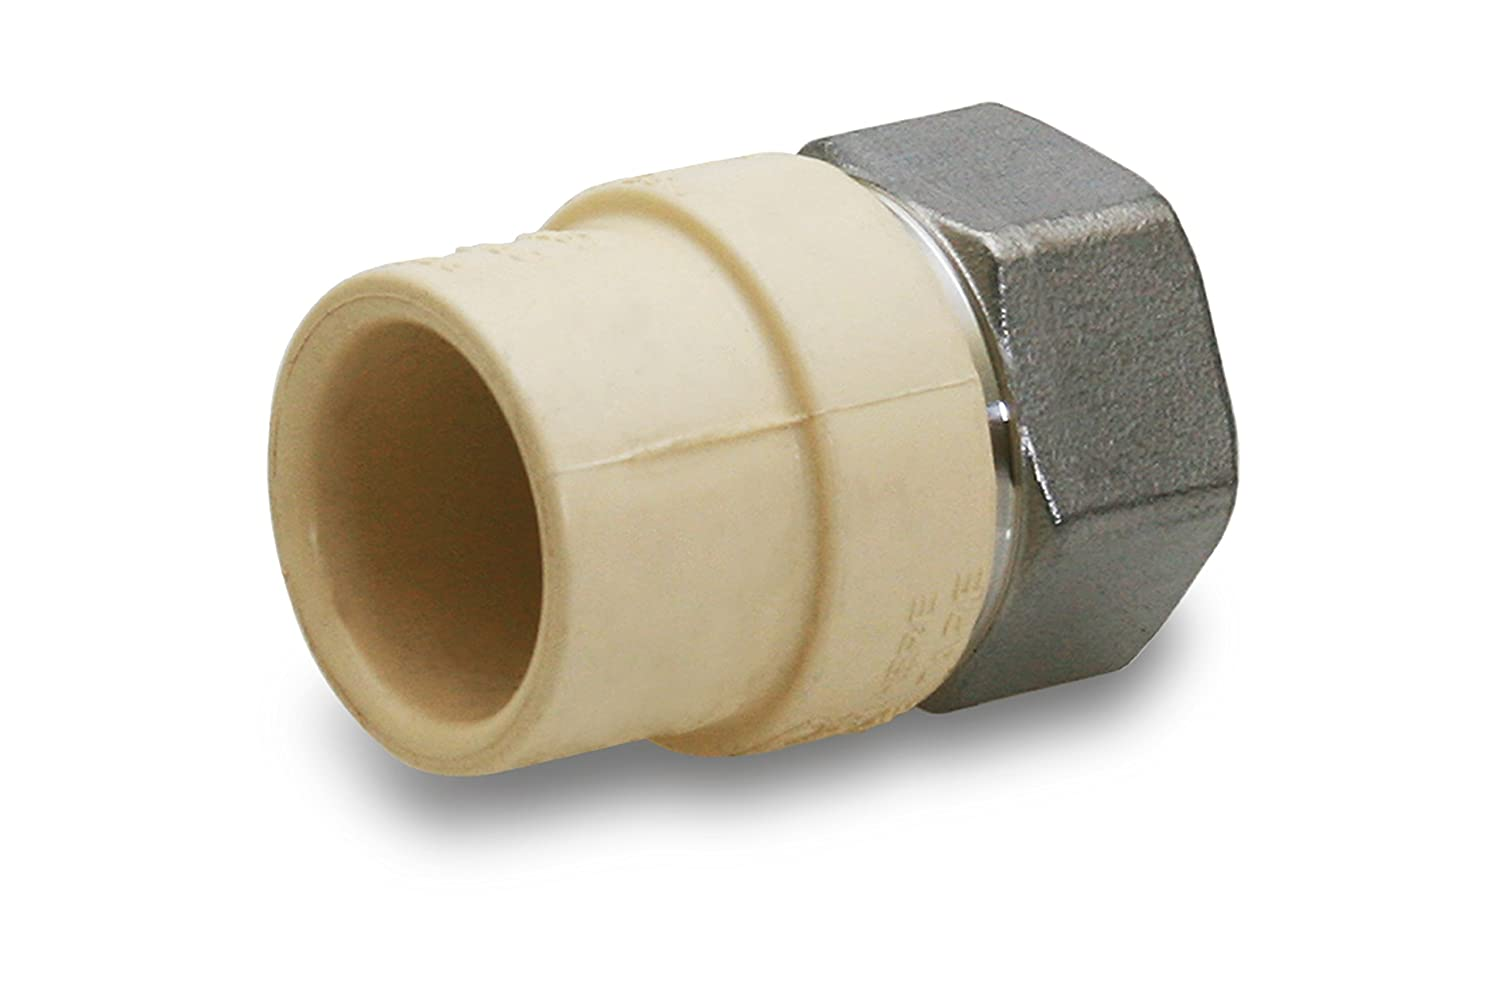 Everflow Supplies SSCPF034-NL 3//4 Lead Free Transition Fitting with a Stainless Steel Female Threaded and with a CPVC Connection